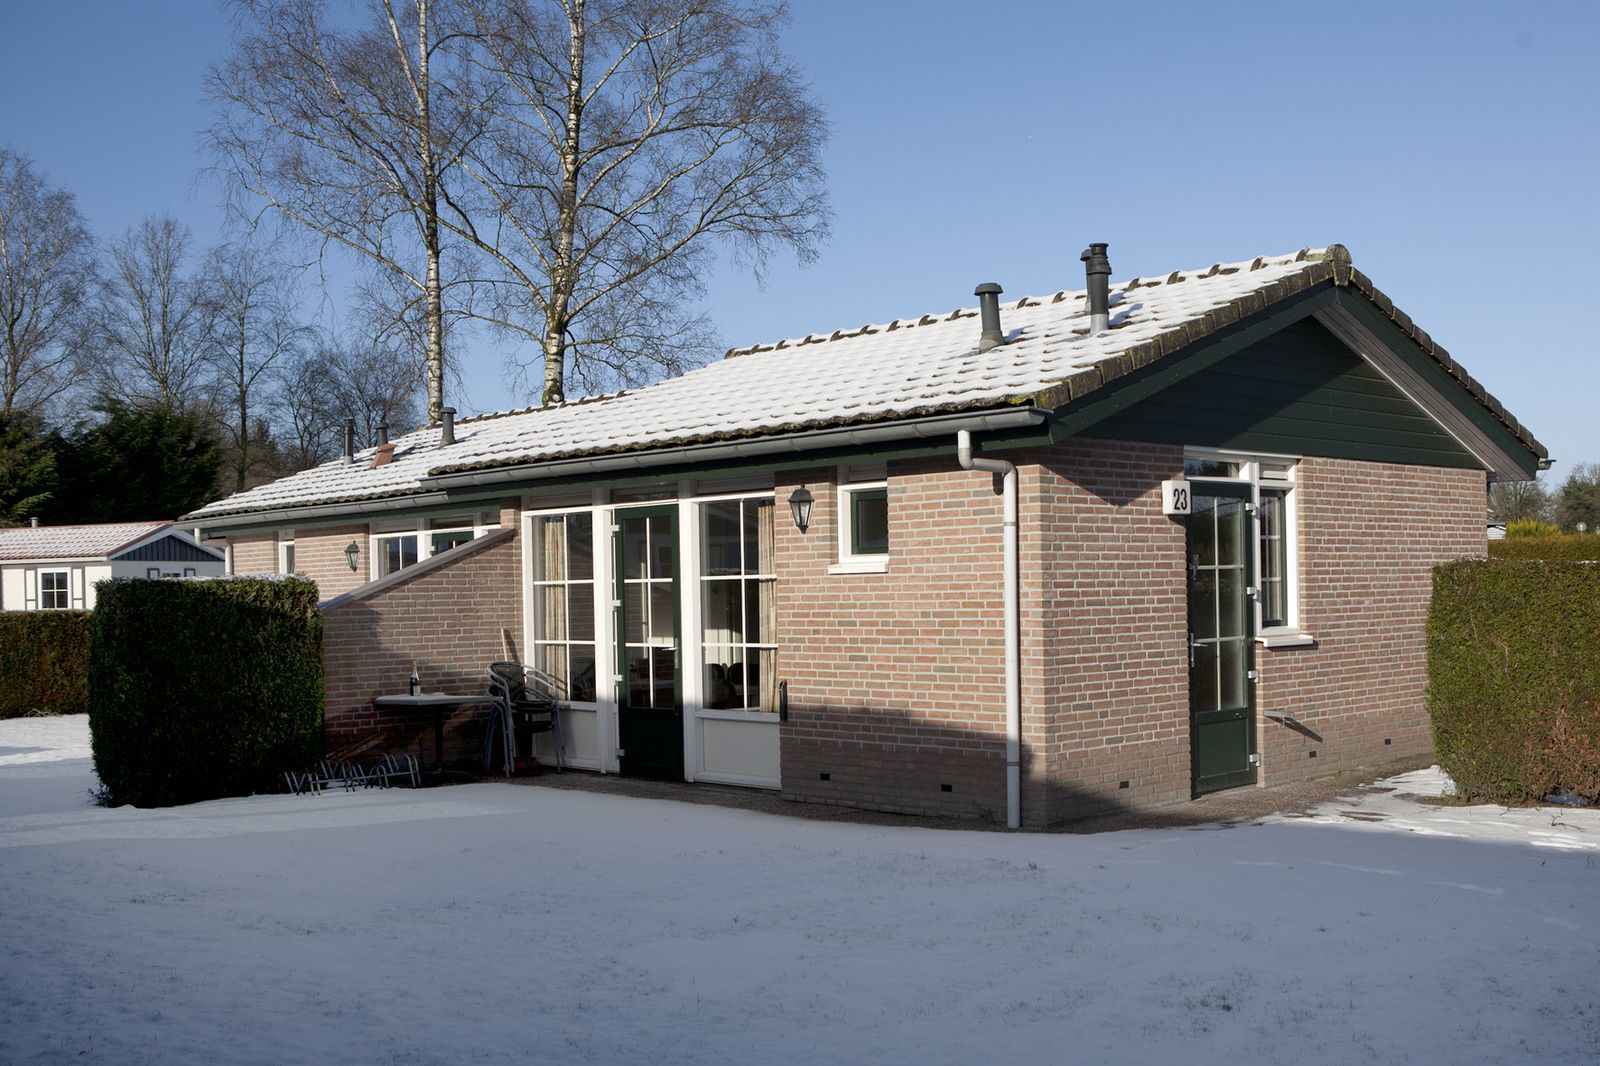 Zeumeren 6-person bungalow